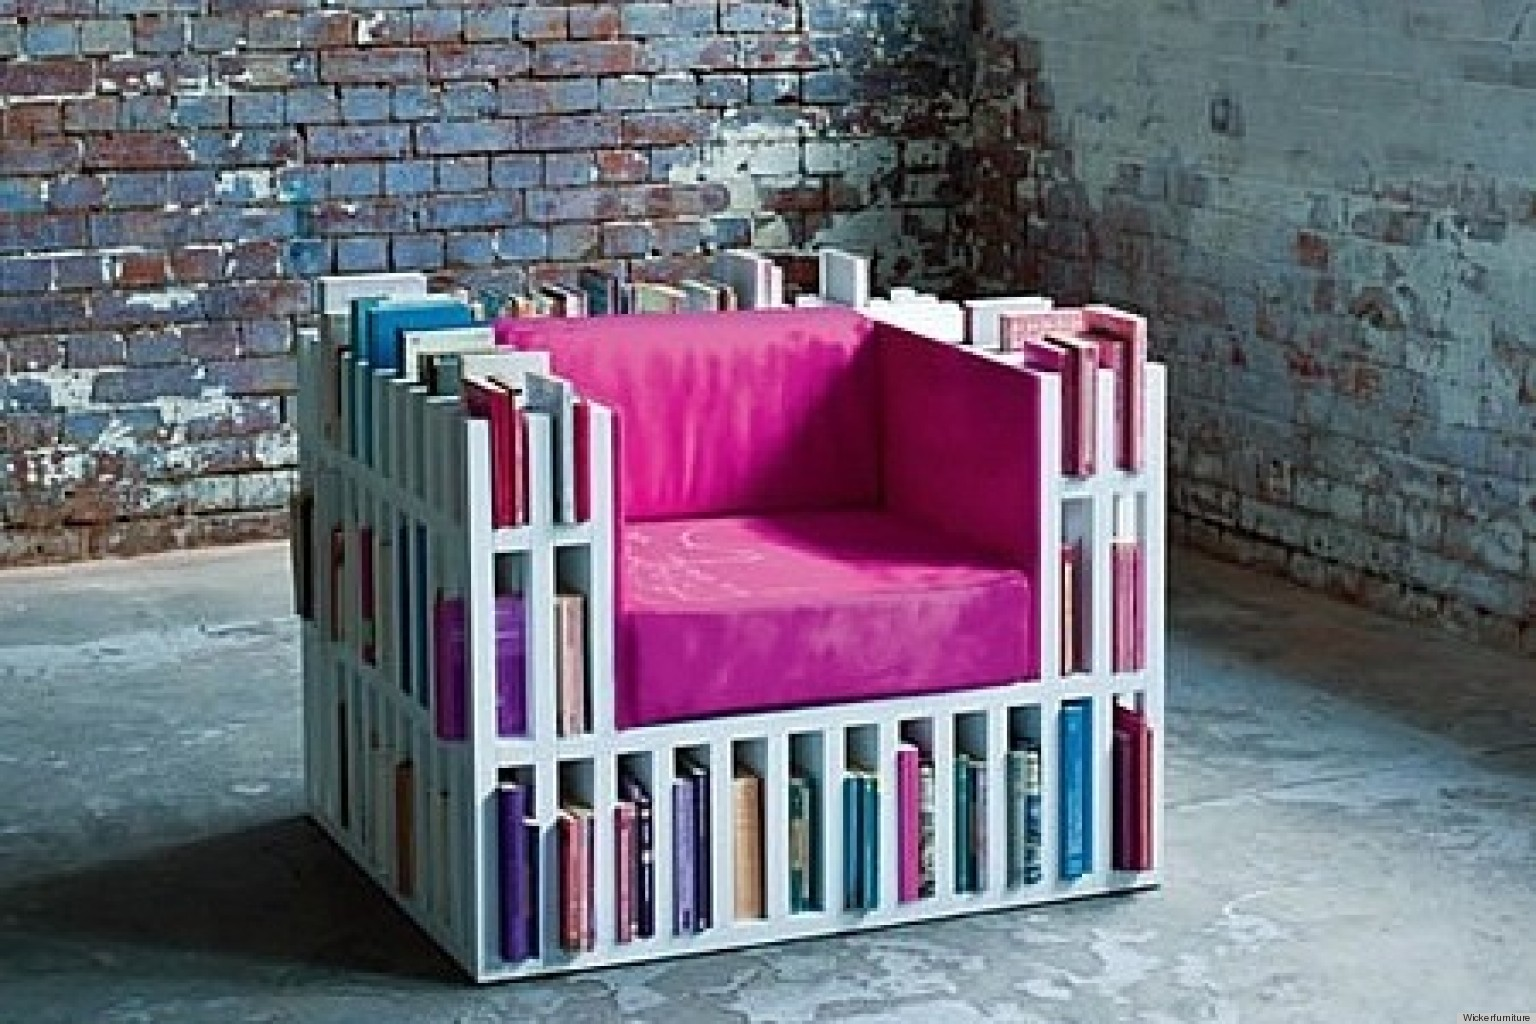 Cool Reading Chairs 9 Cool Chairs That Artfully Inspire Us To Think Outside